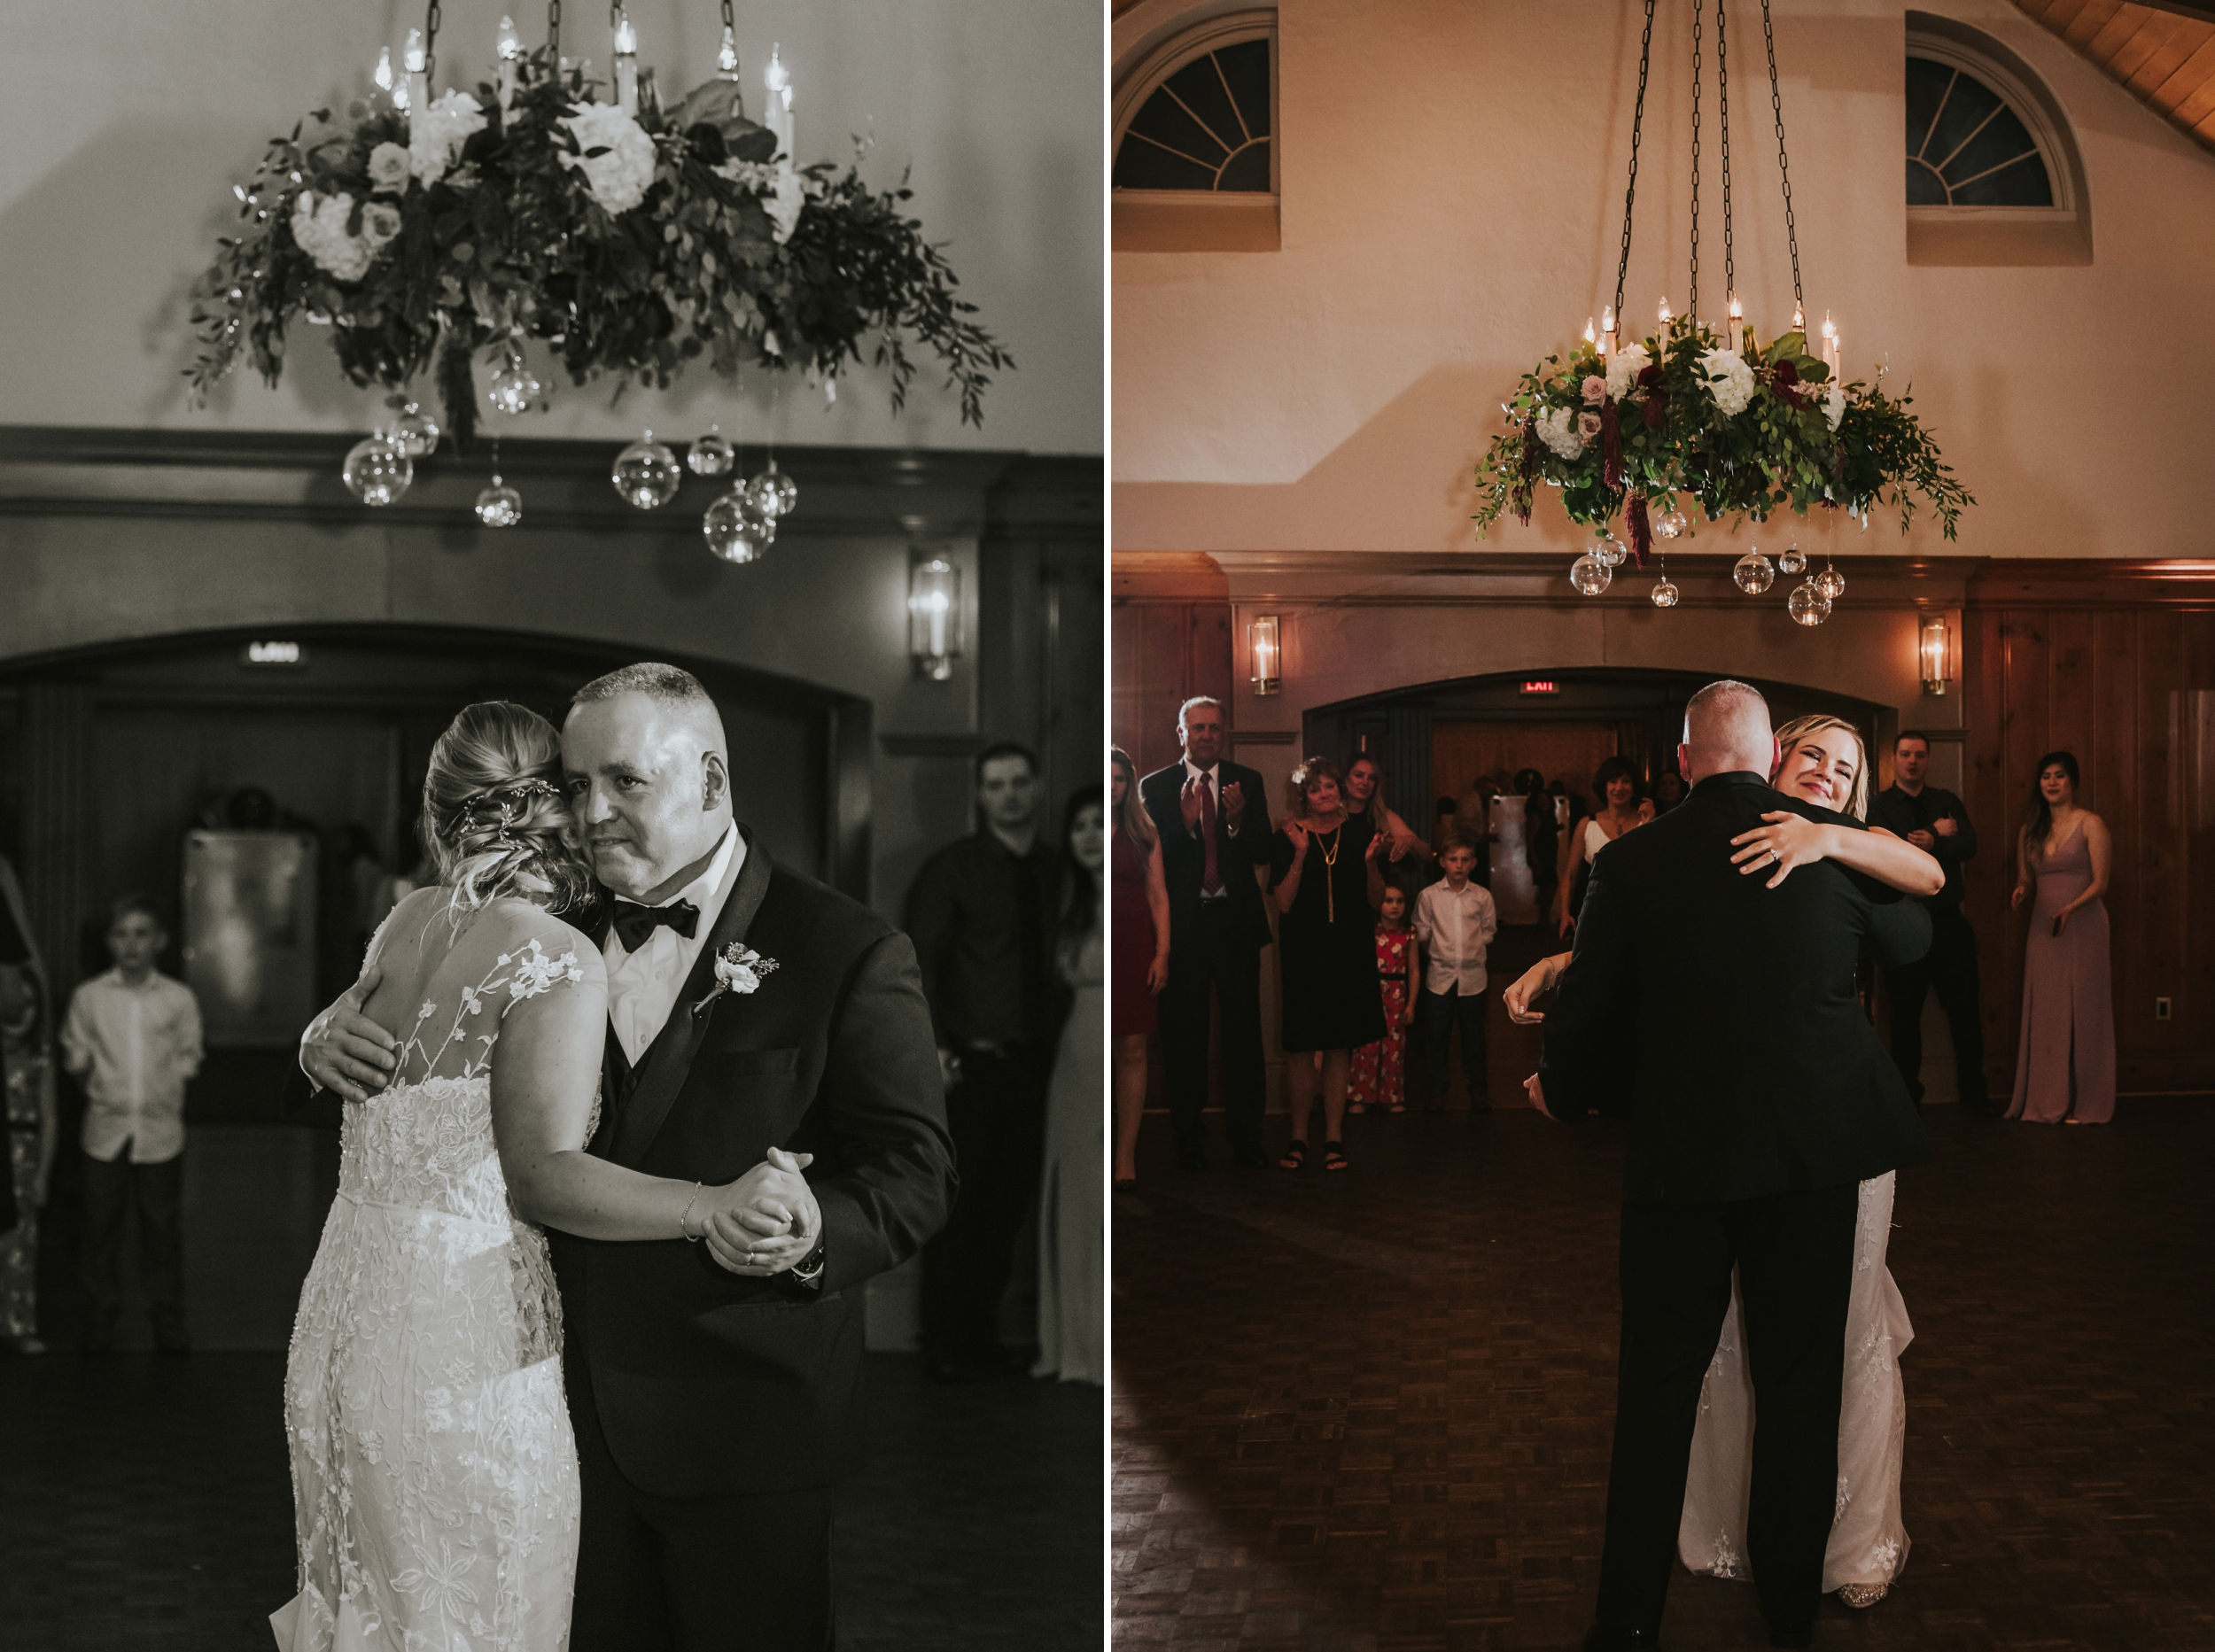 Ashley & Conor - Rockaway River Country Club New Jersey Wedding 096.jpg